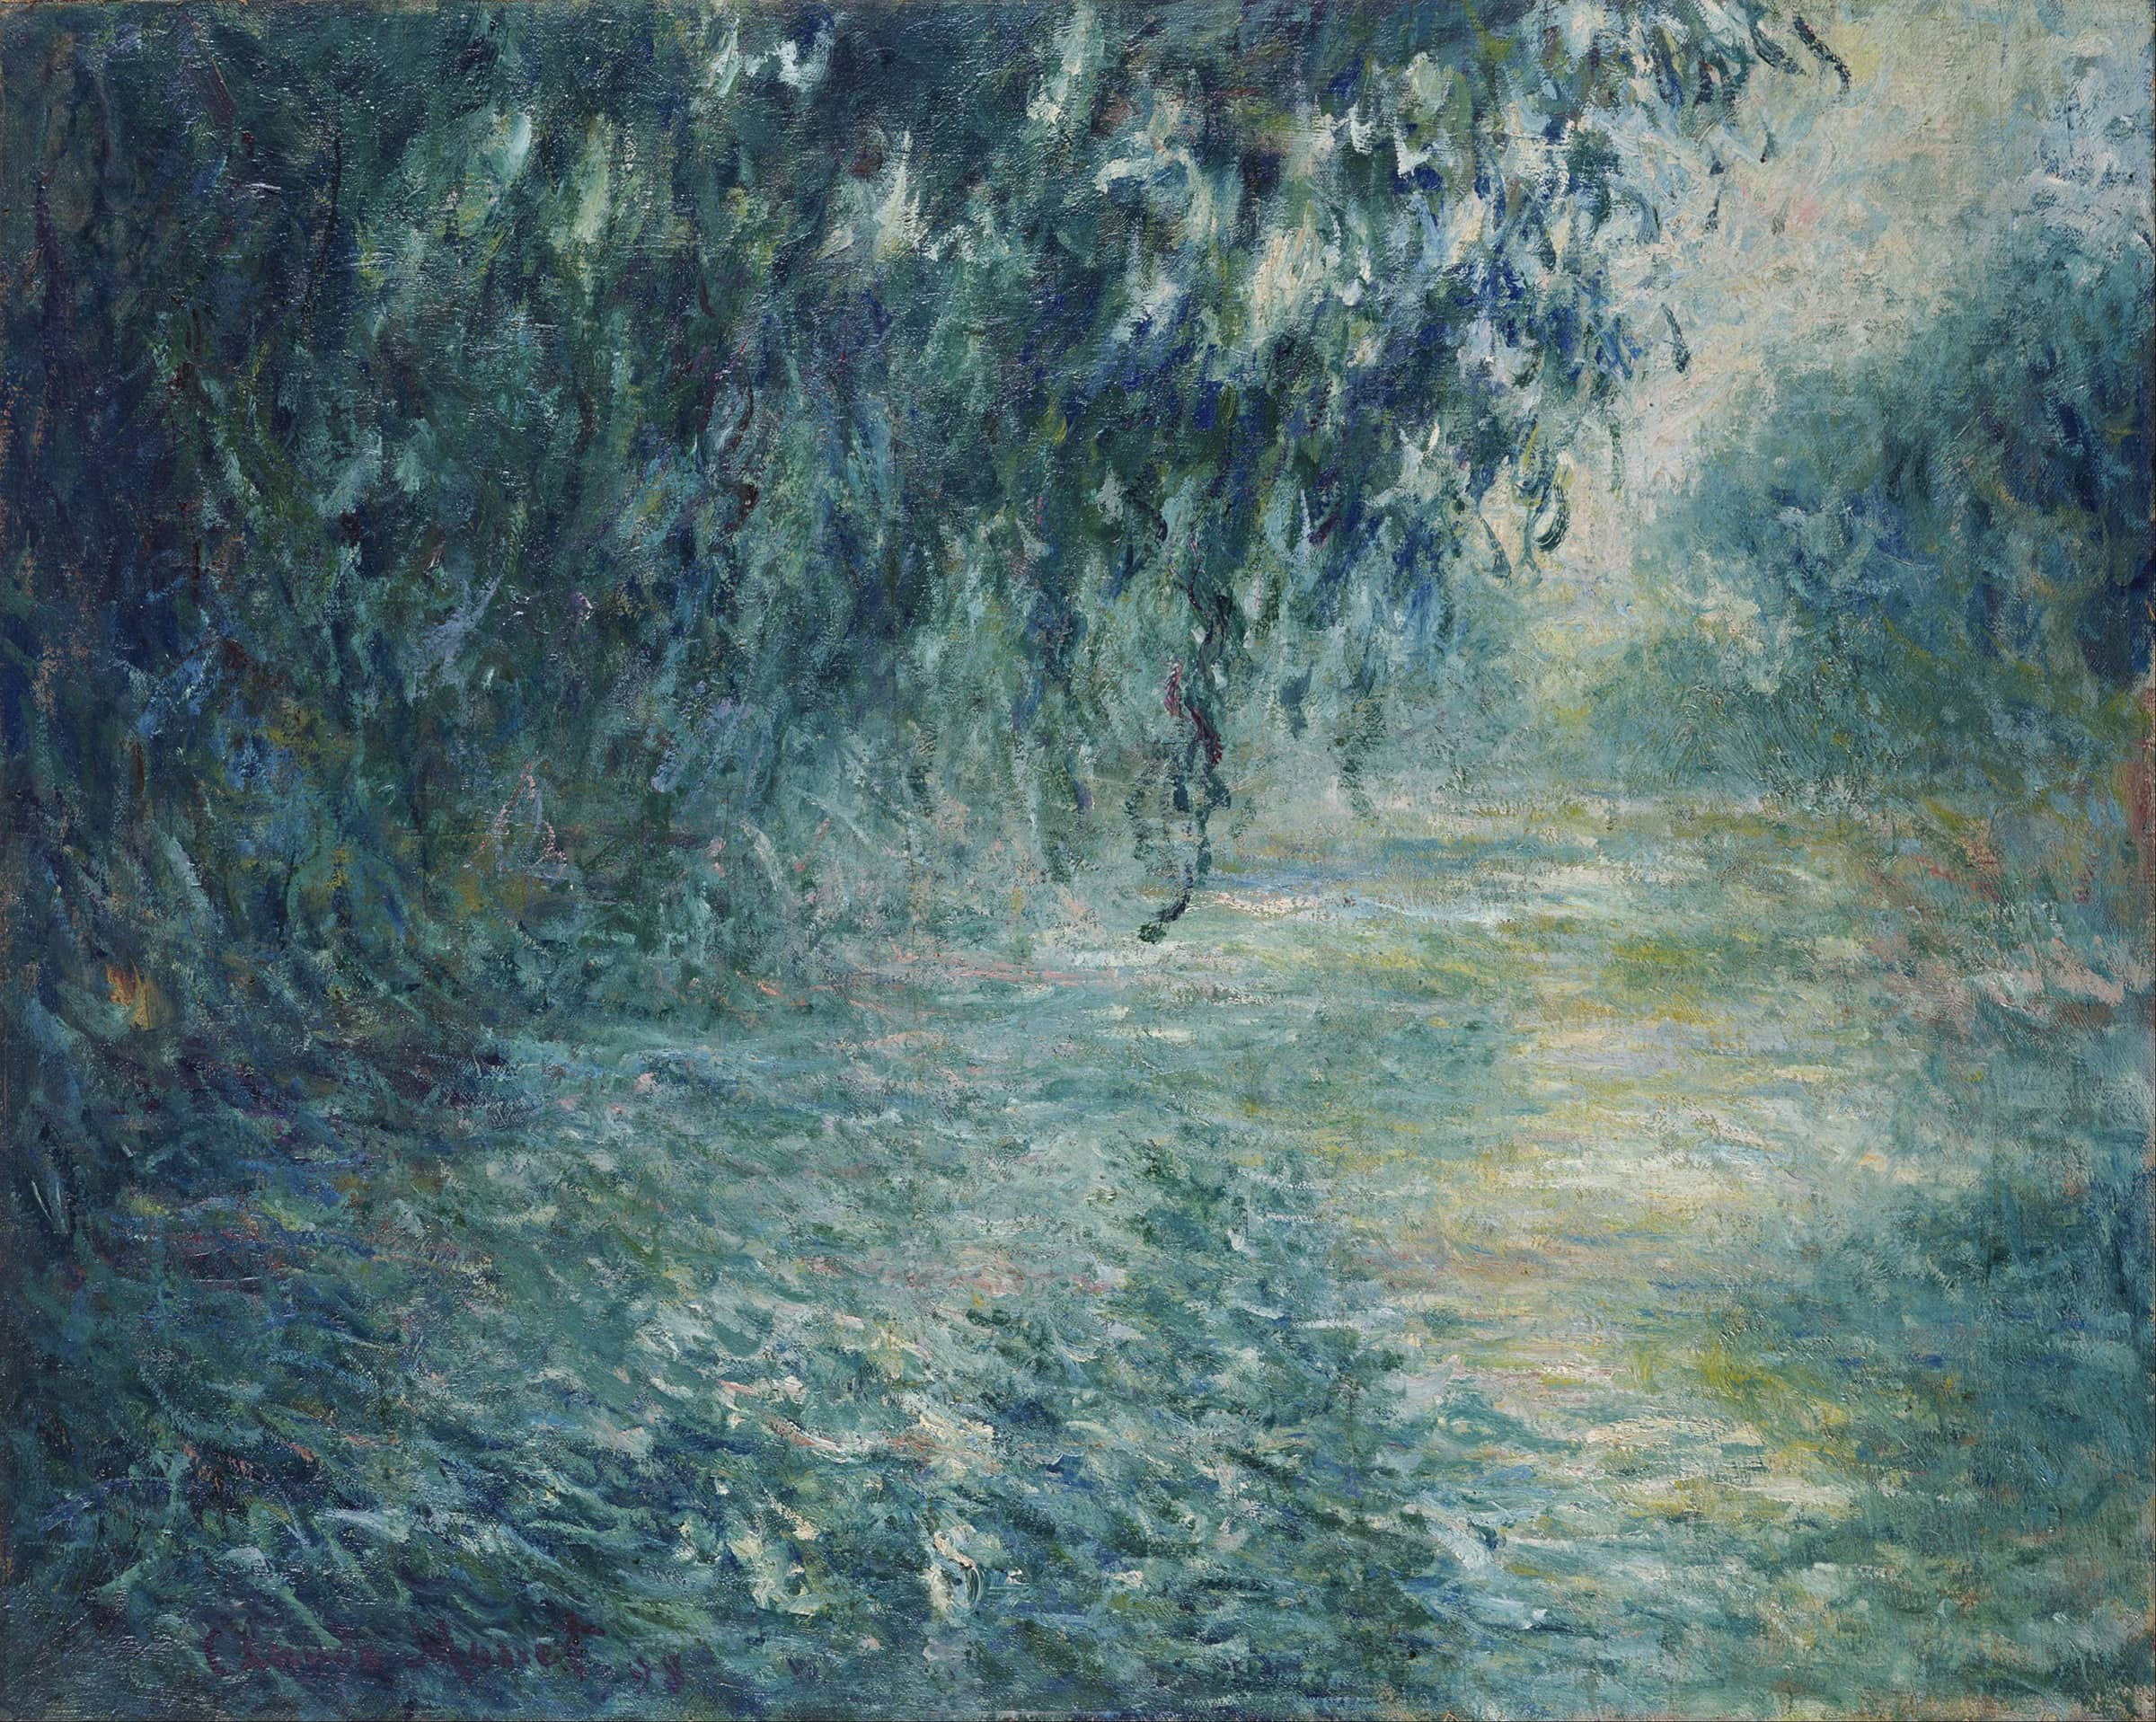 Morning on the Seine, Claude Monet, 1898